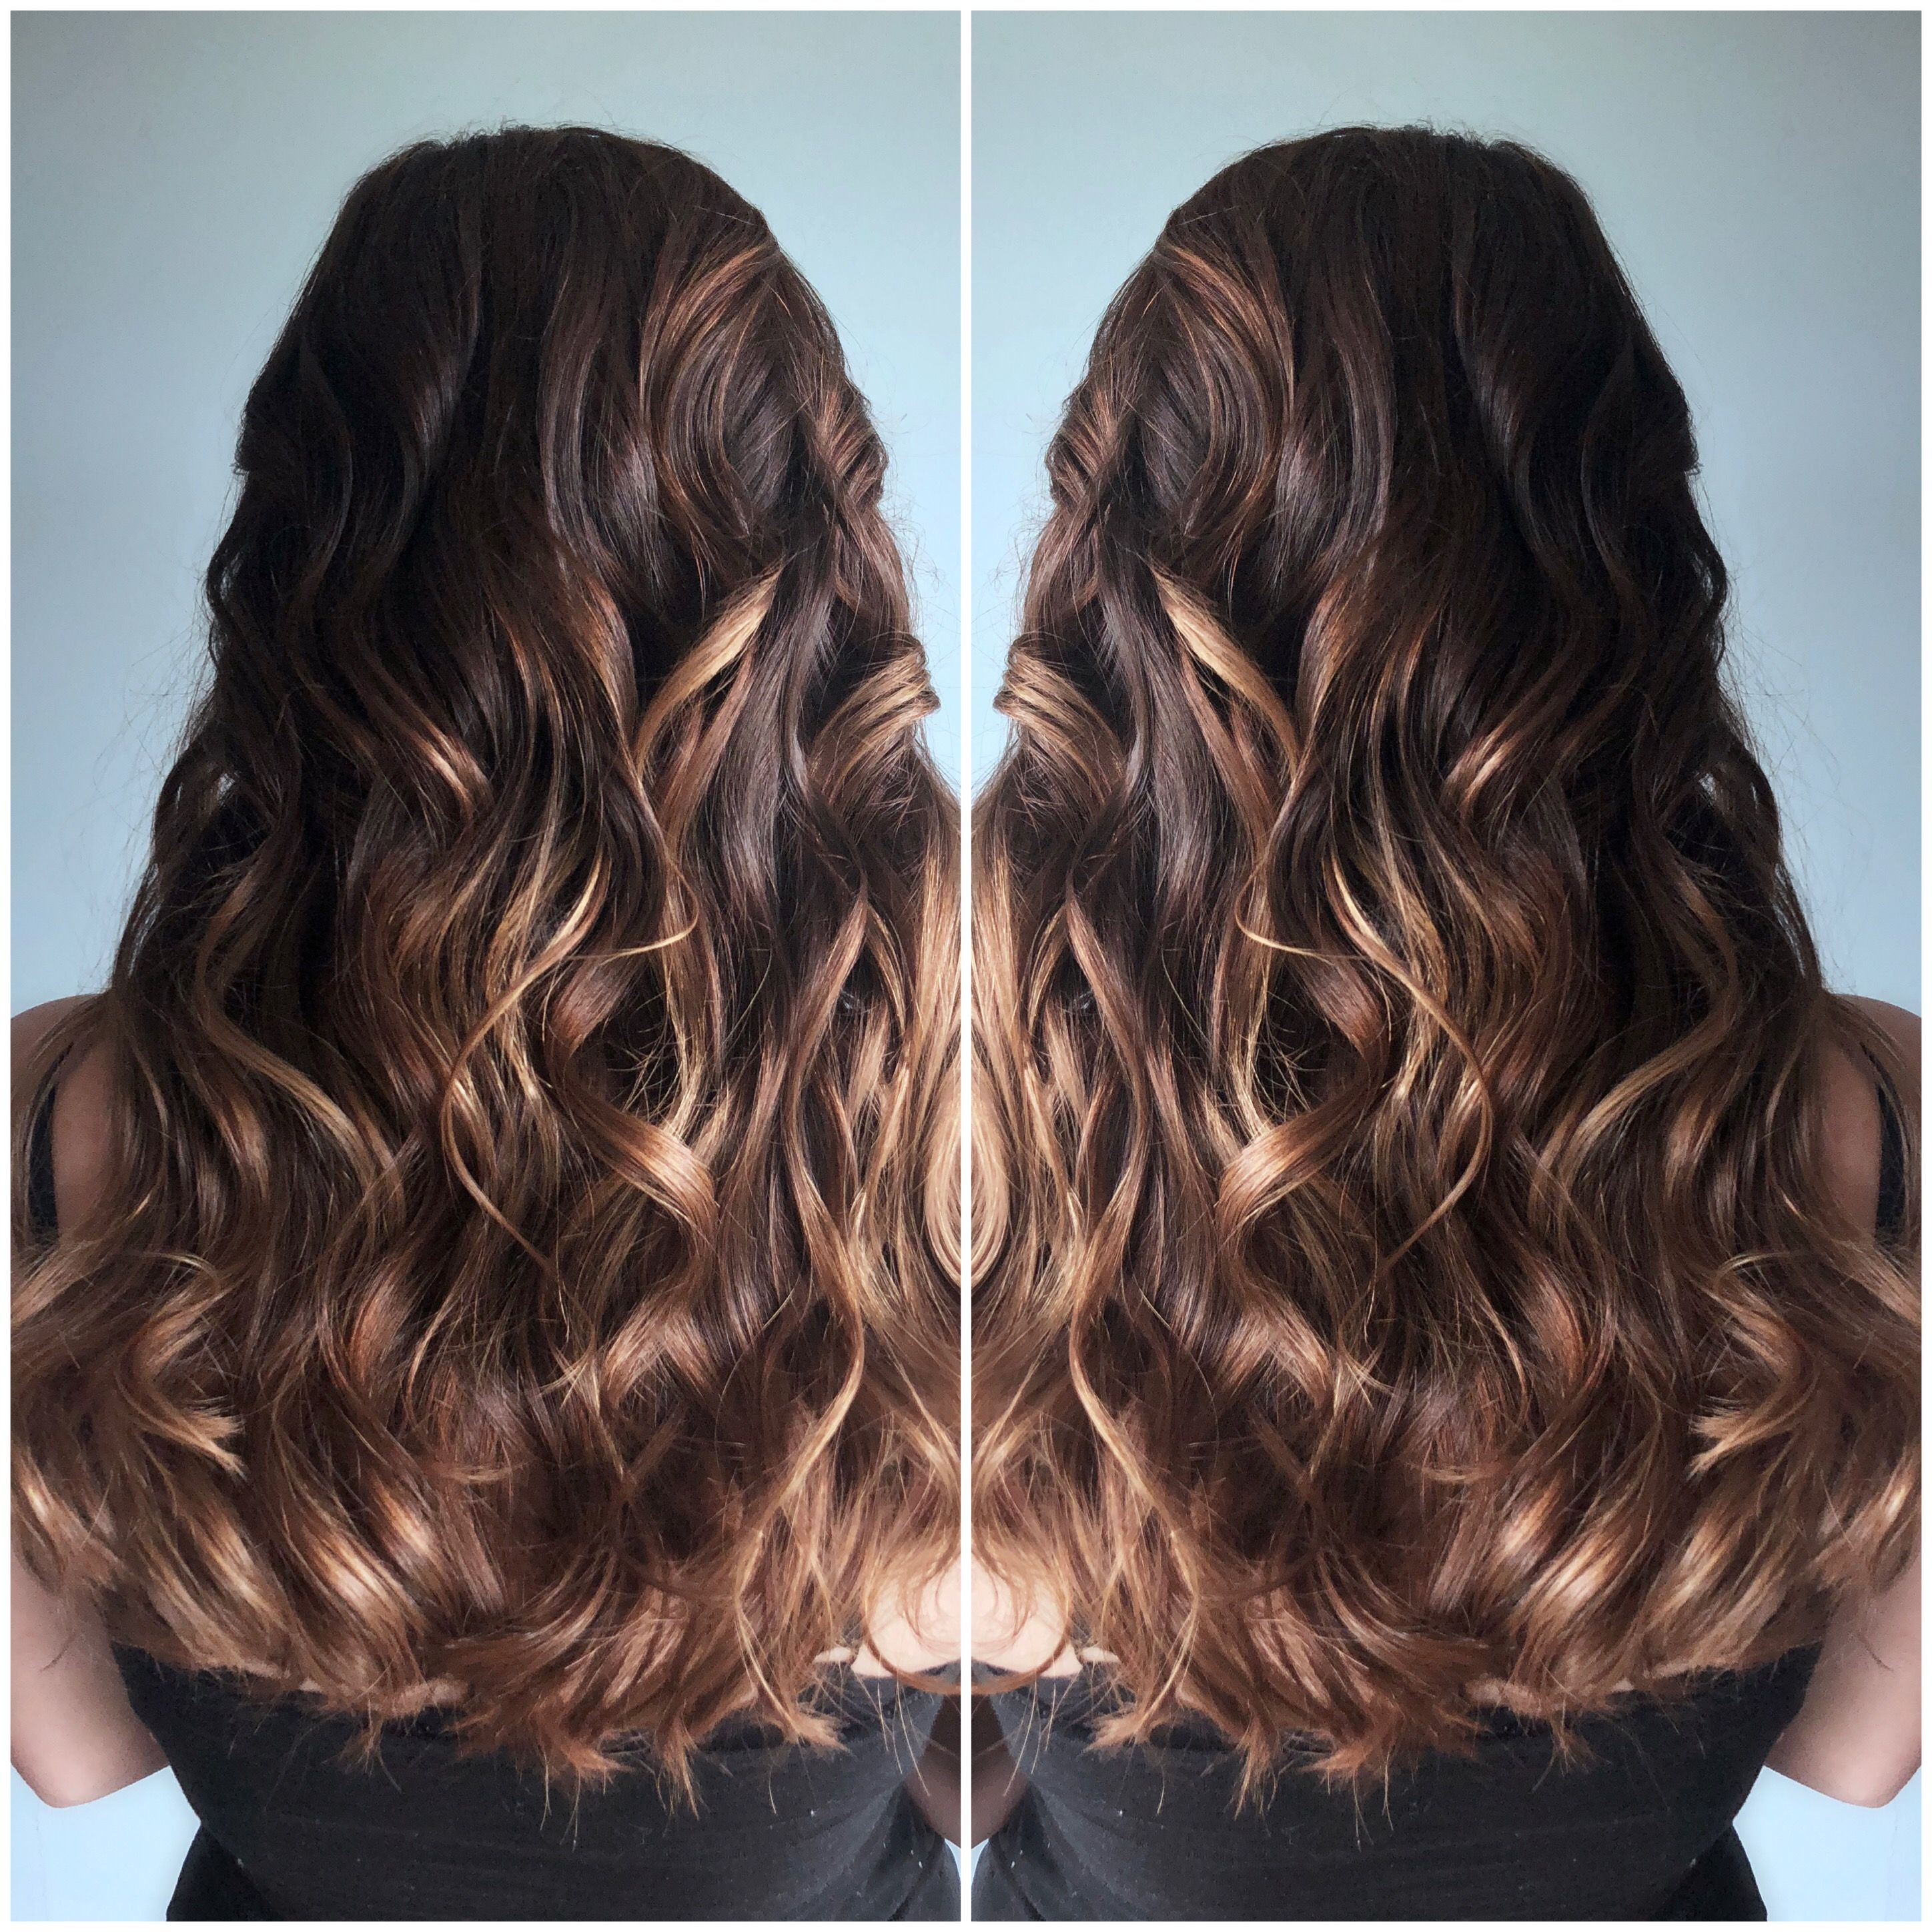 Balayage Highlight And Style Curled Brown Hair Balayage Ombre Curly Hair Brown Hair With Highlights And Lowlights